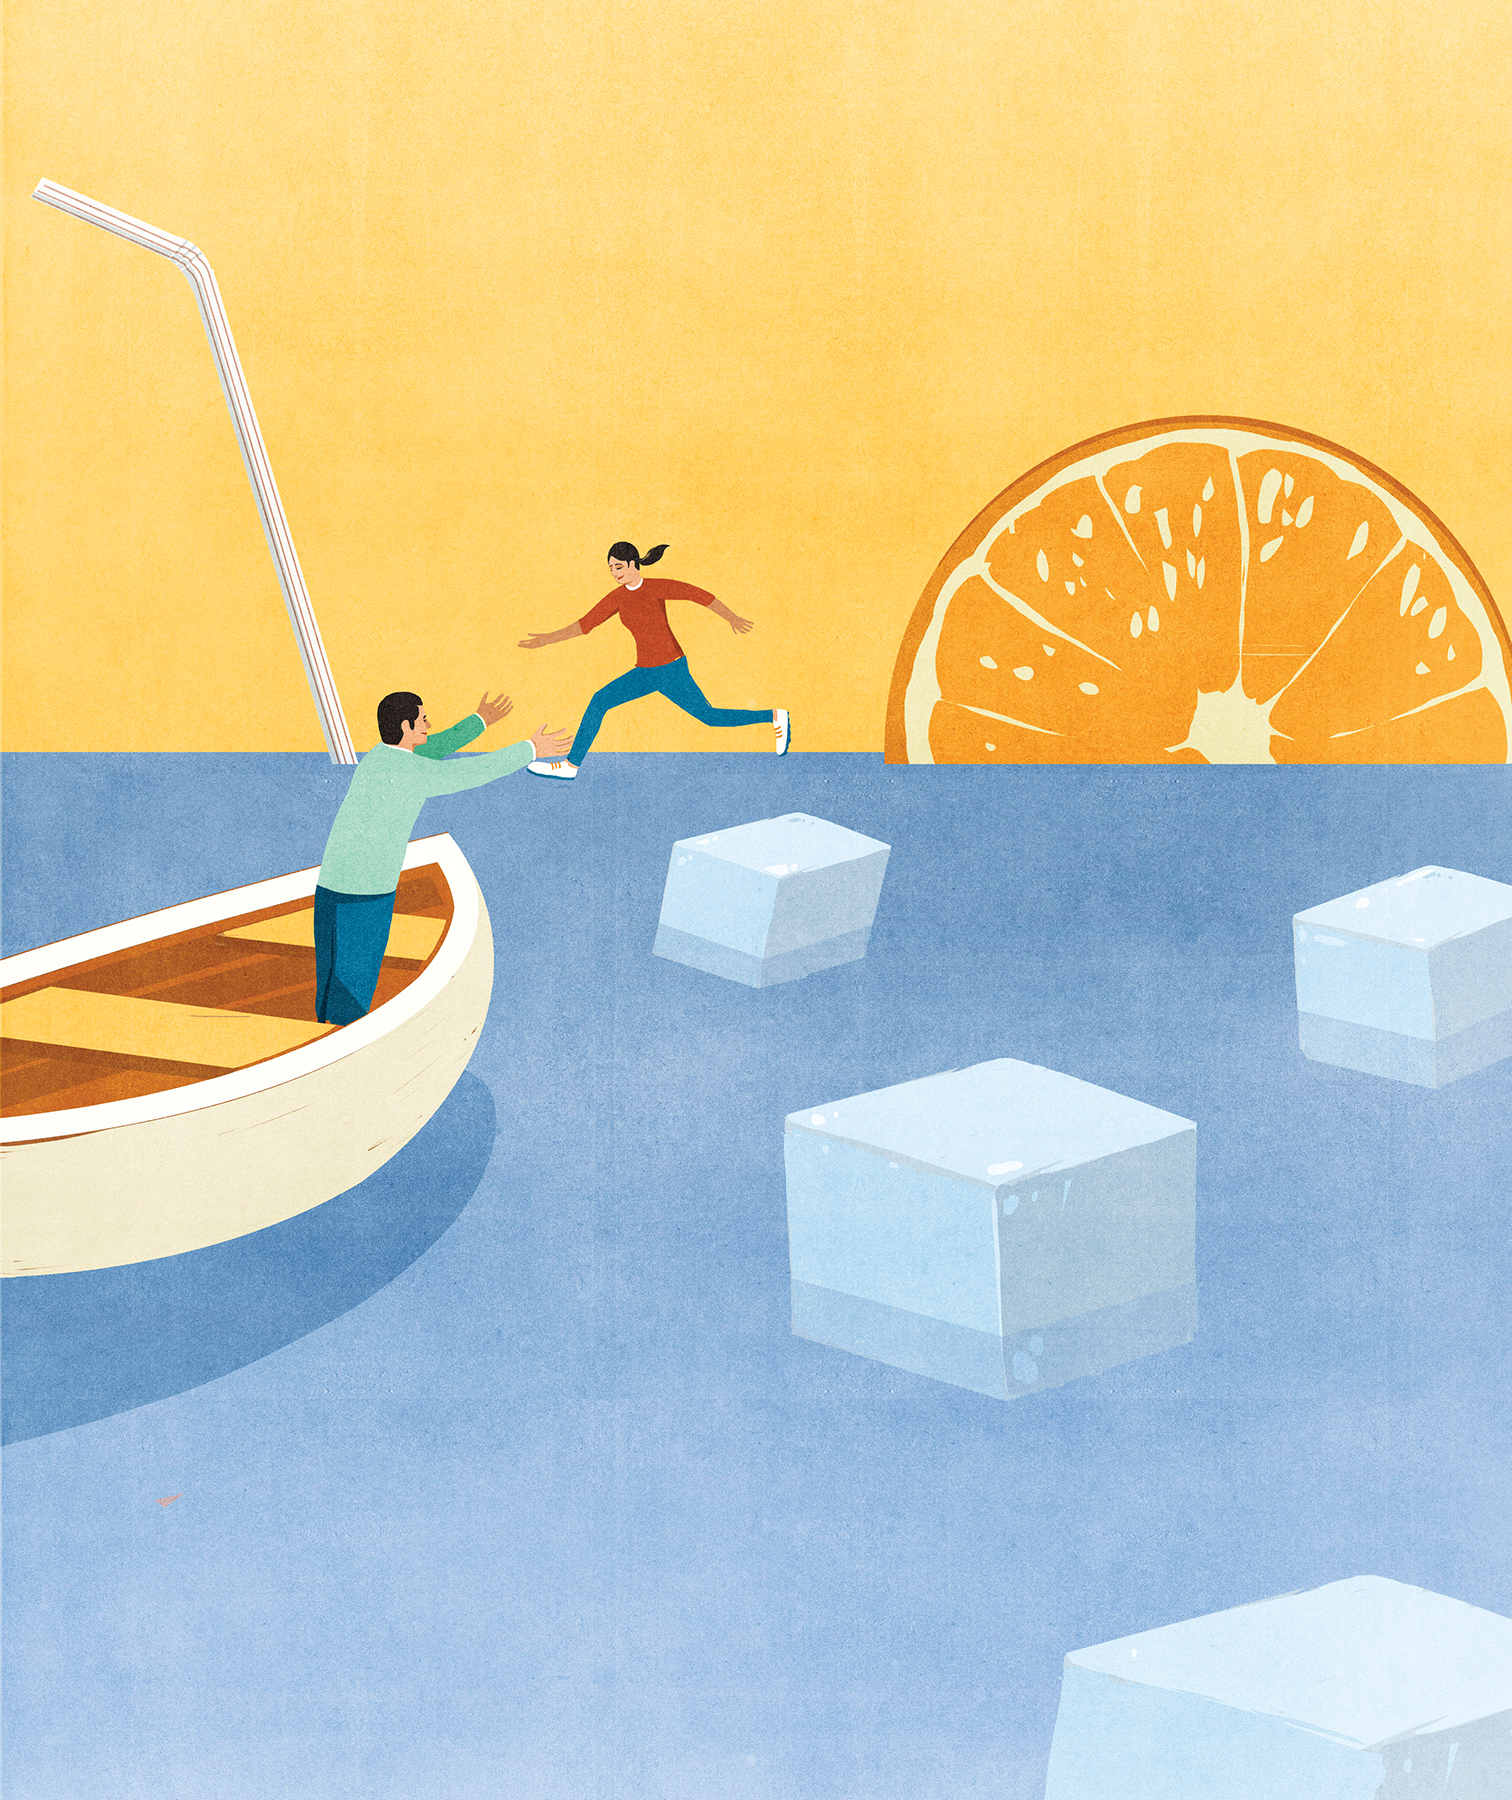 Illustration: Child jumping from floating sugarcube into the arms of parent in boat